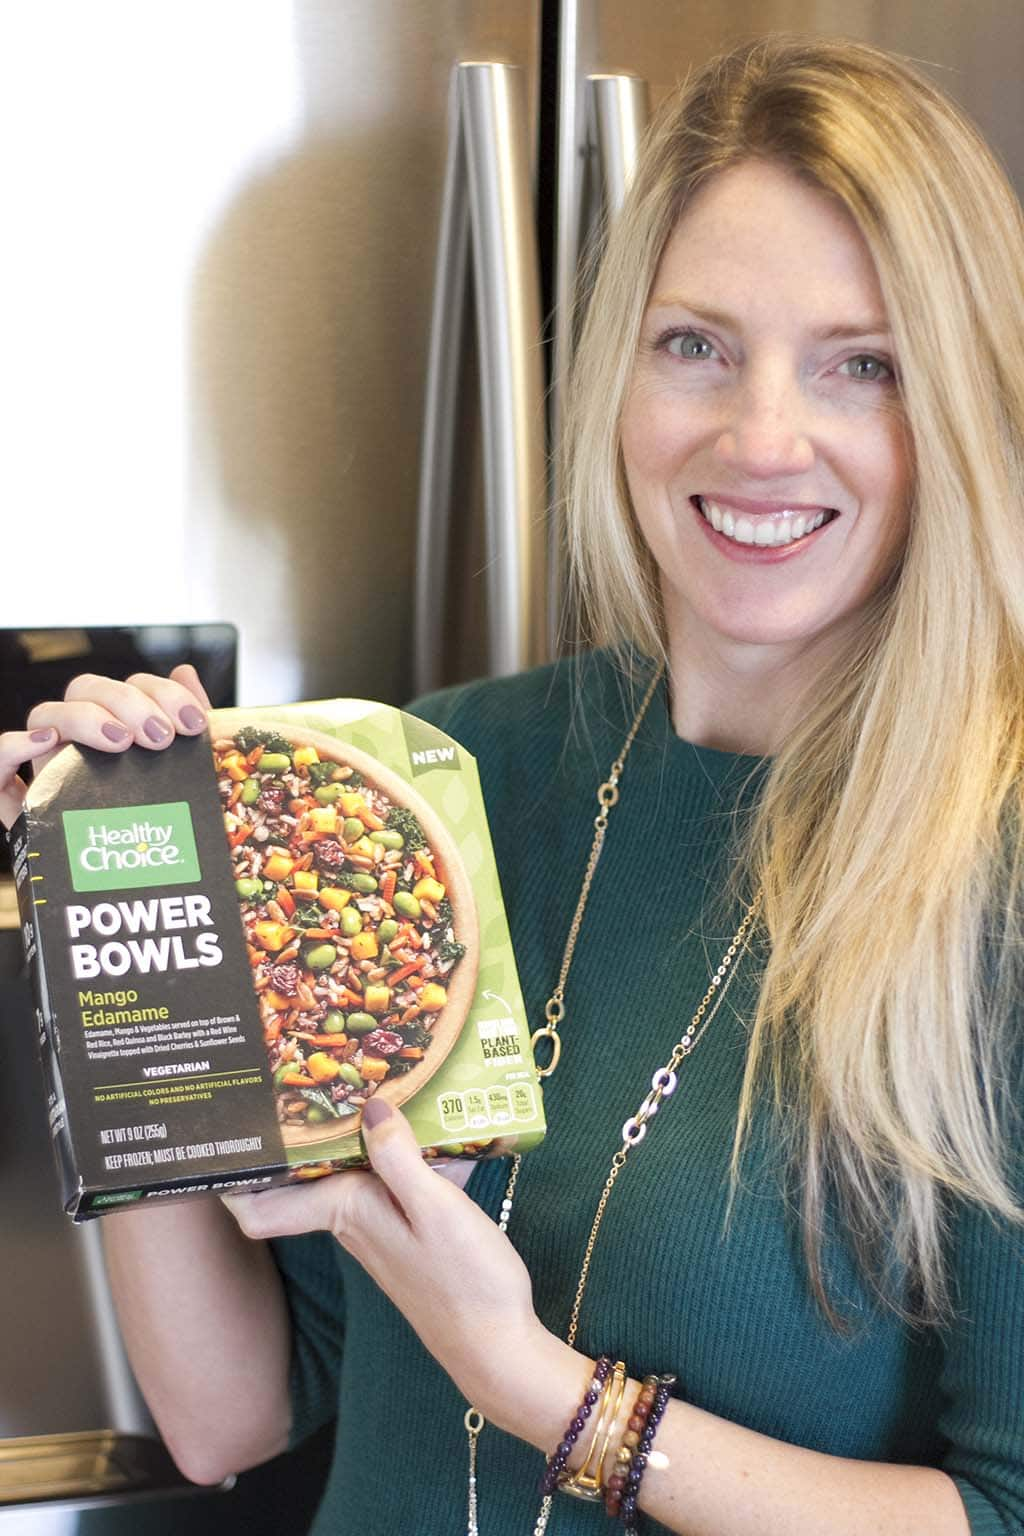 Power Bowl from Healthy Choice